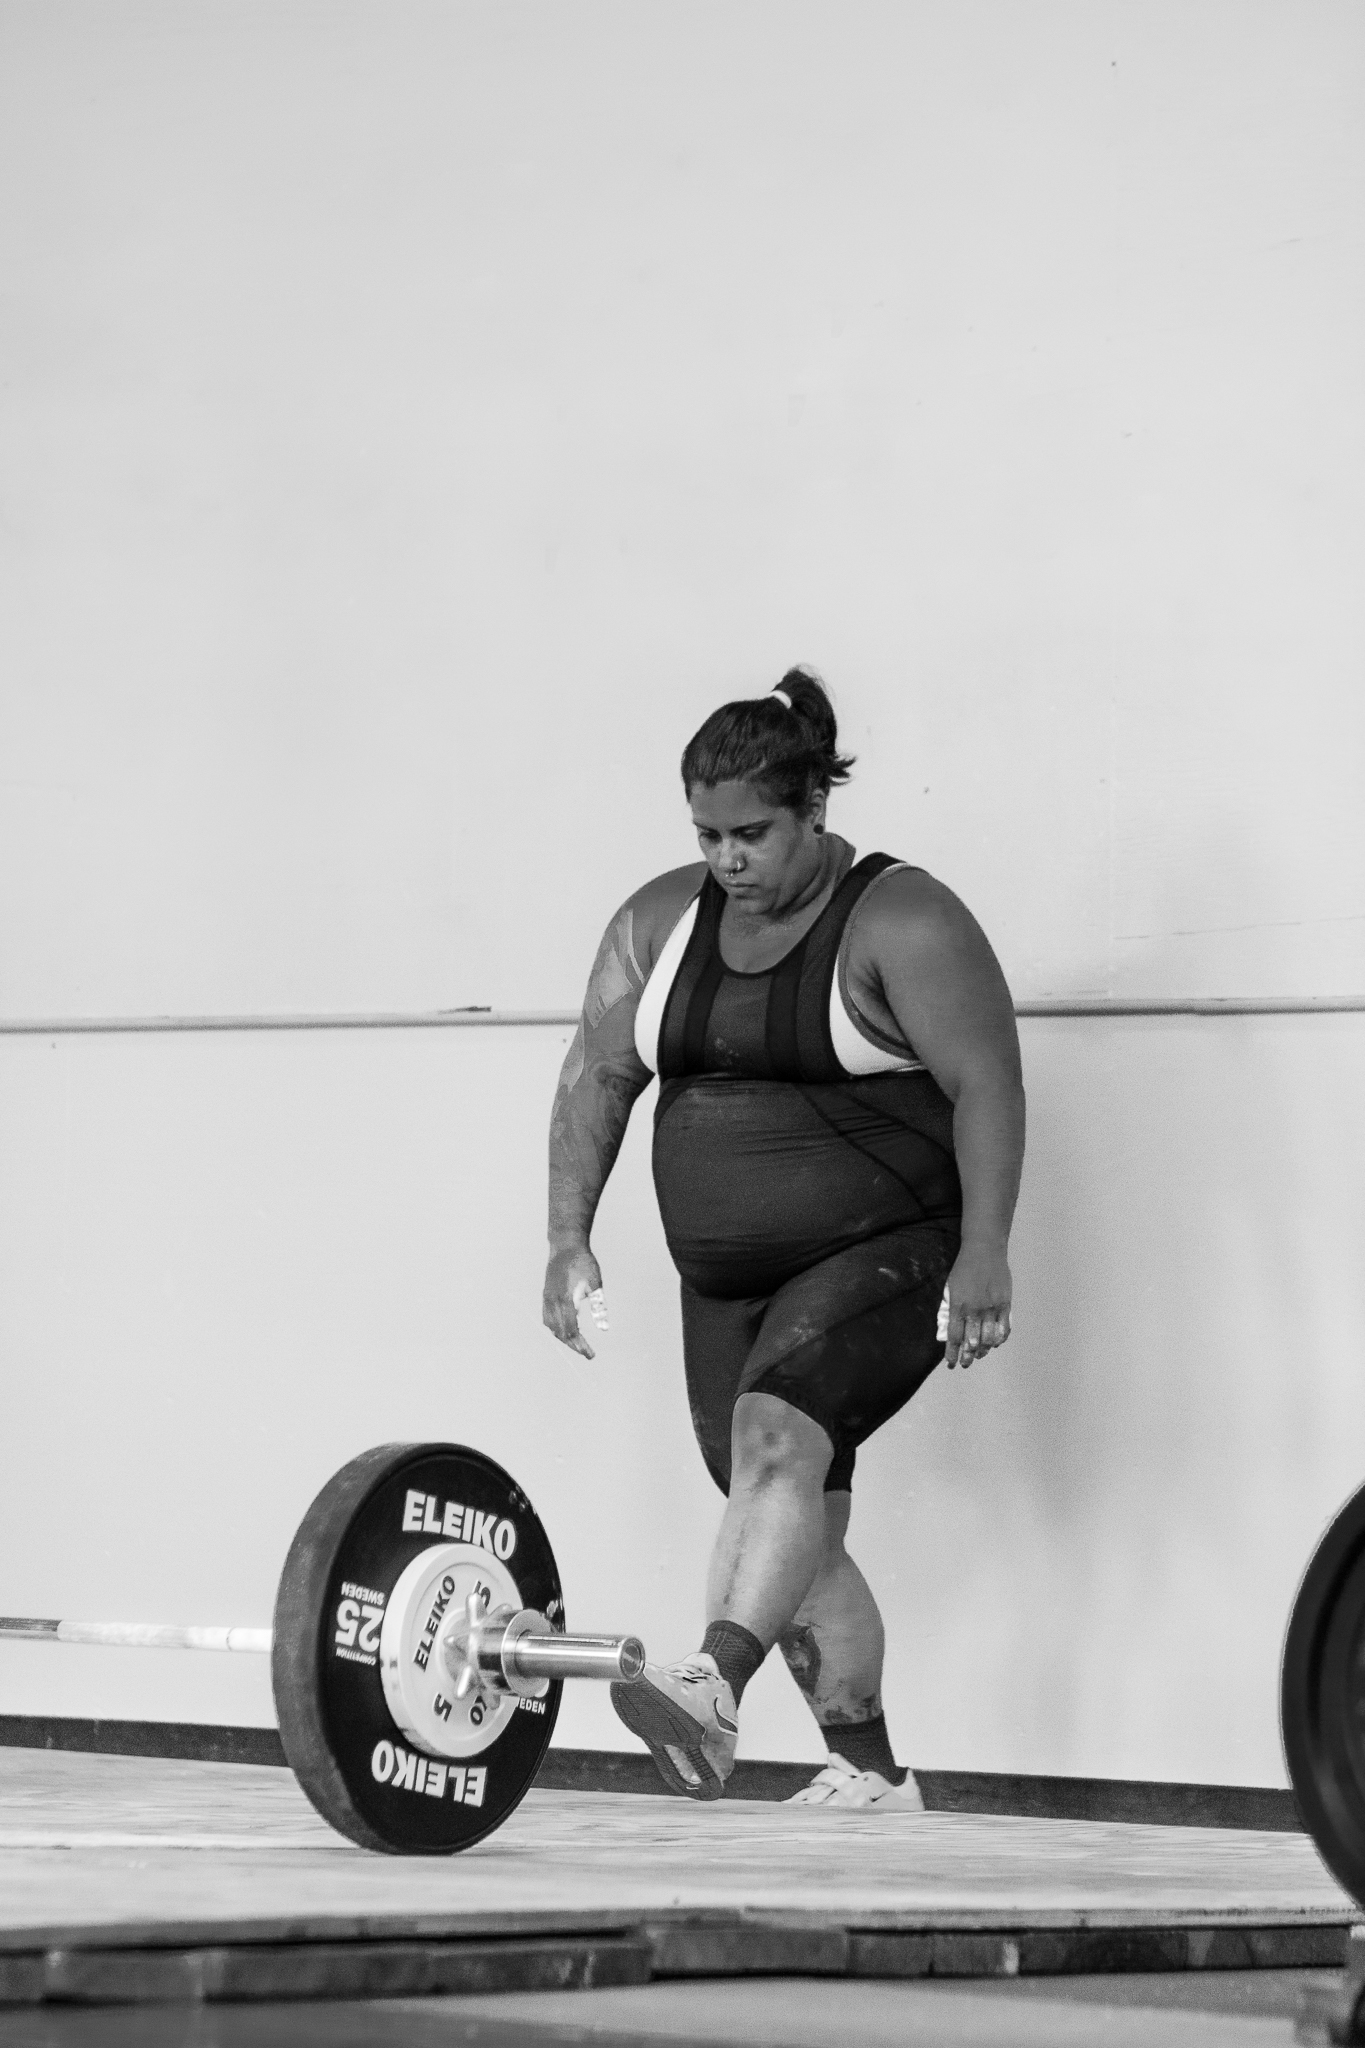 weightlifter-focused-weightlifting-photograph-vp.jpg